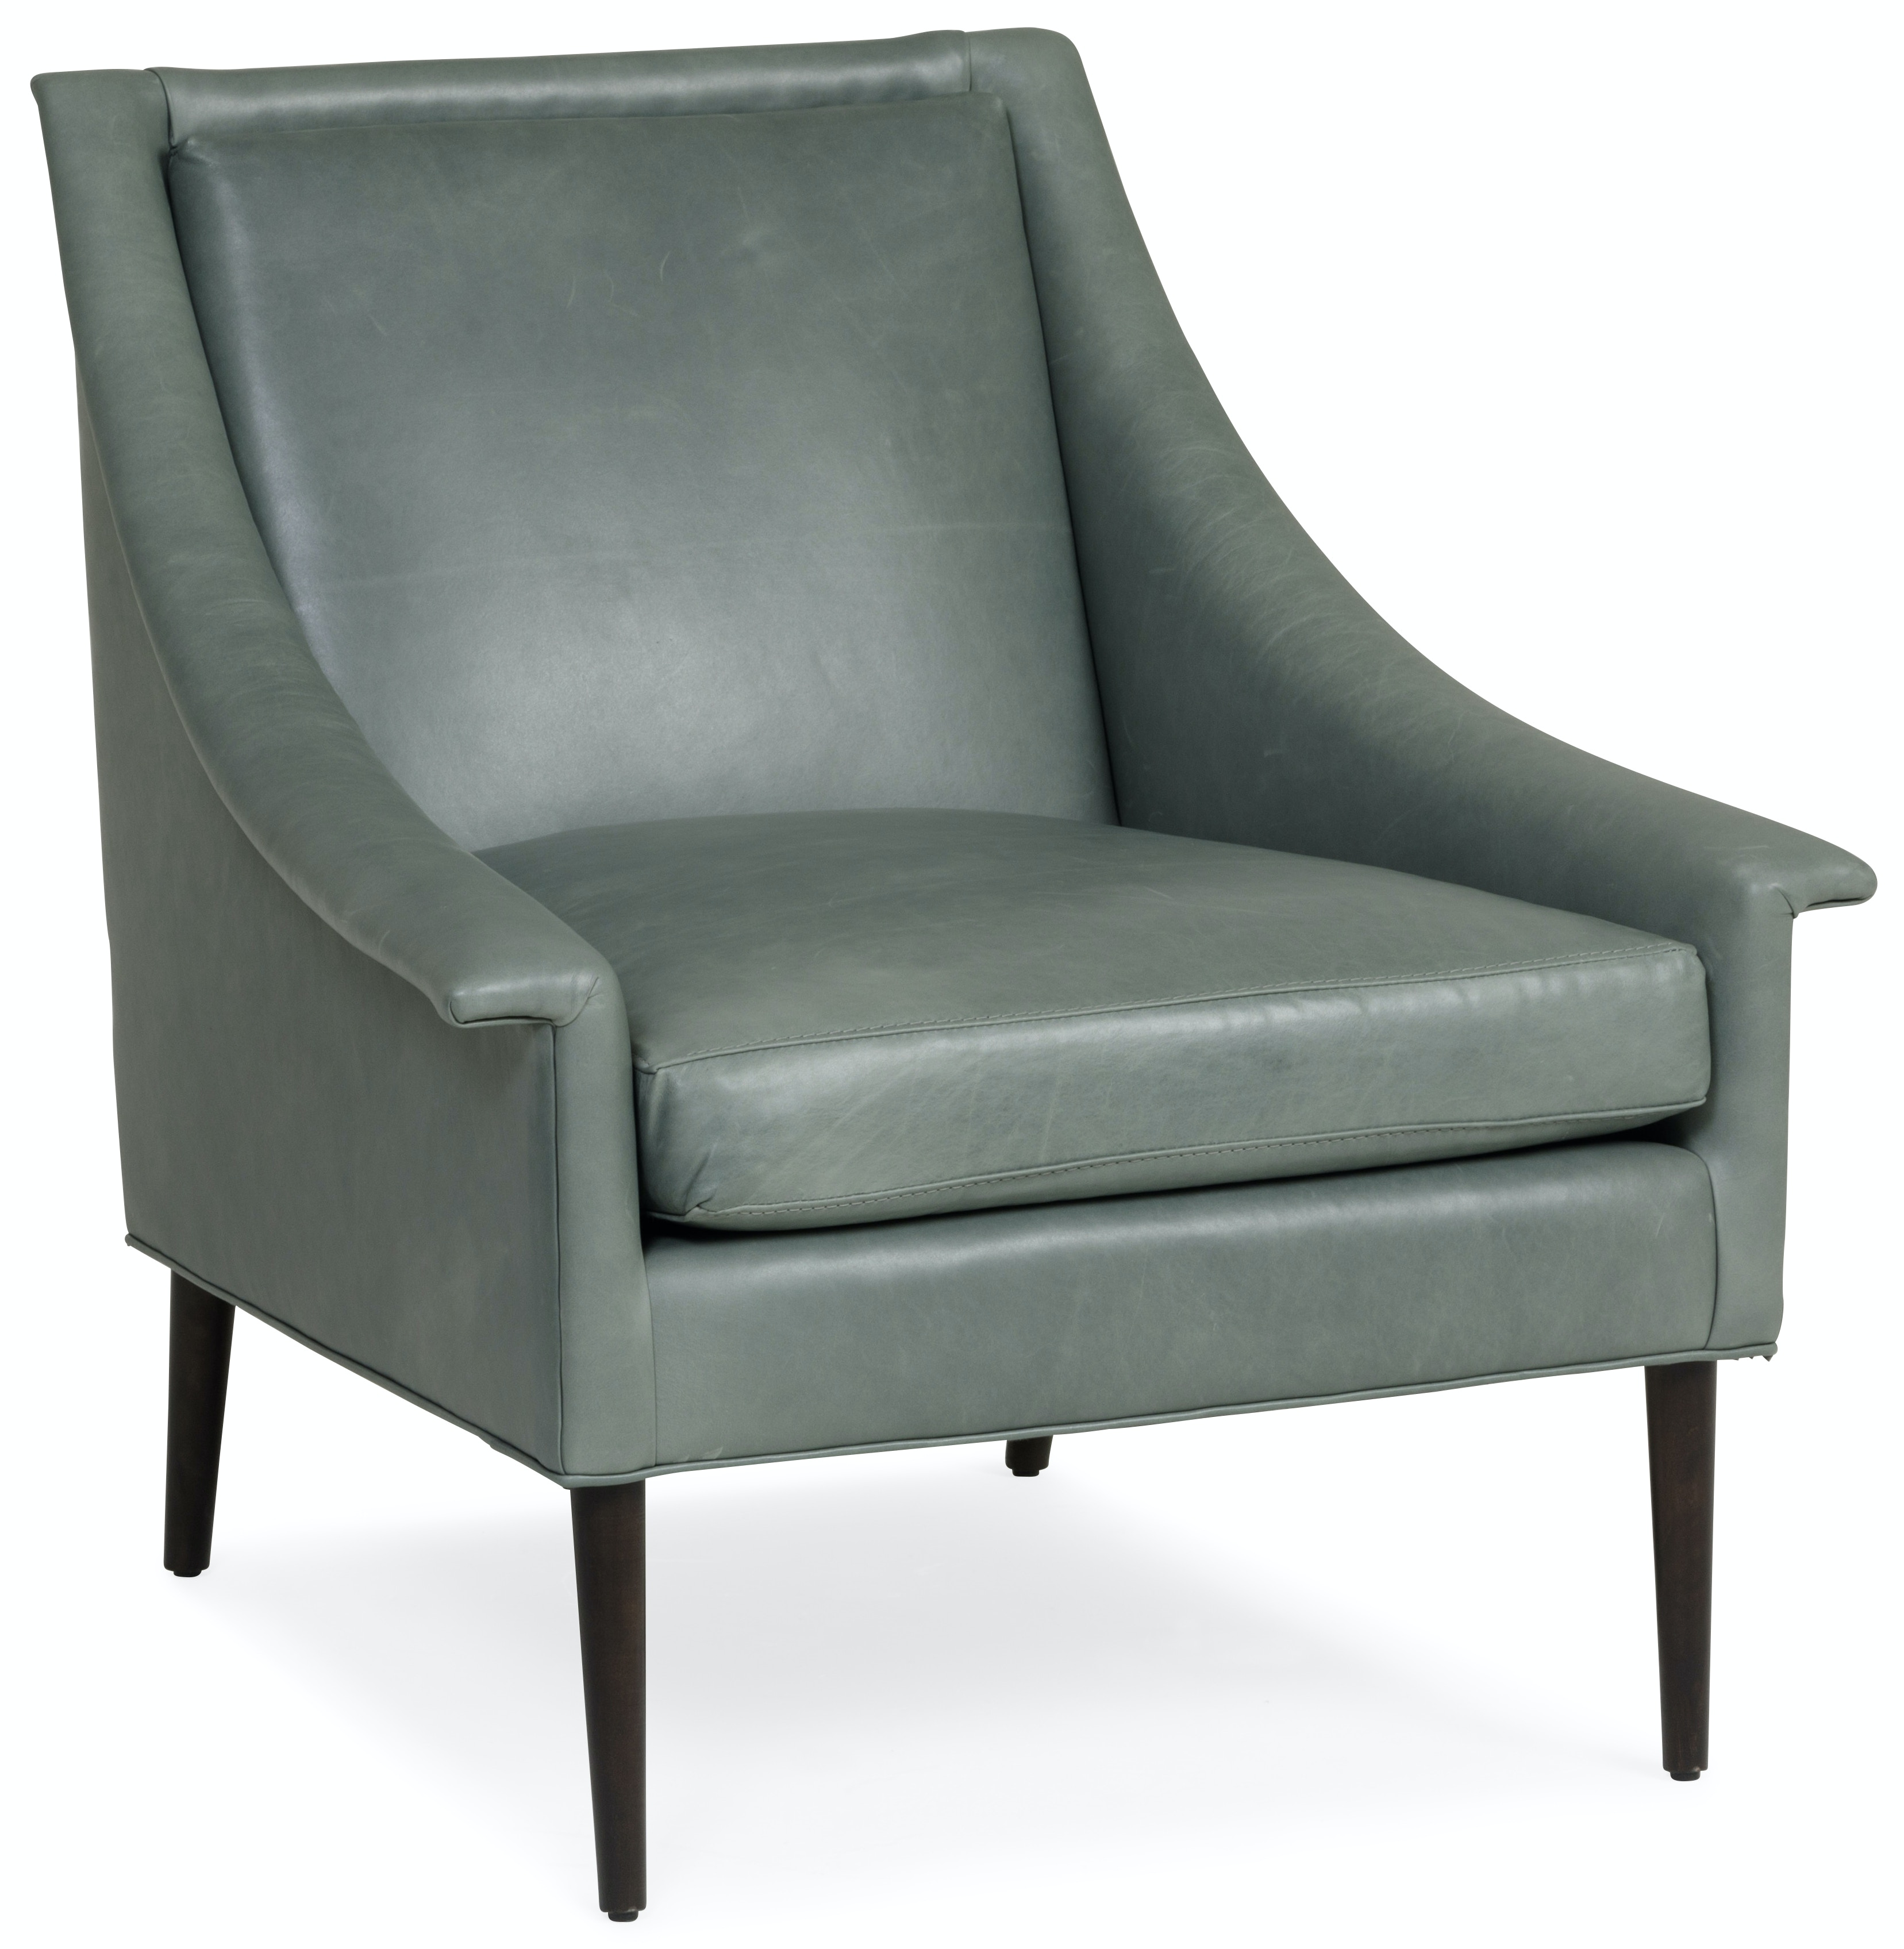 unique accent chairs folding outdoor camping living room grace leather chair st 514613